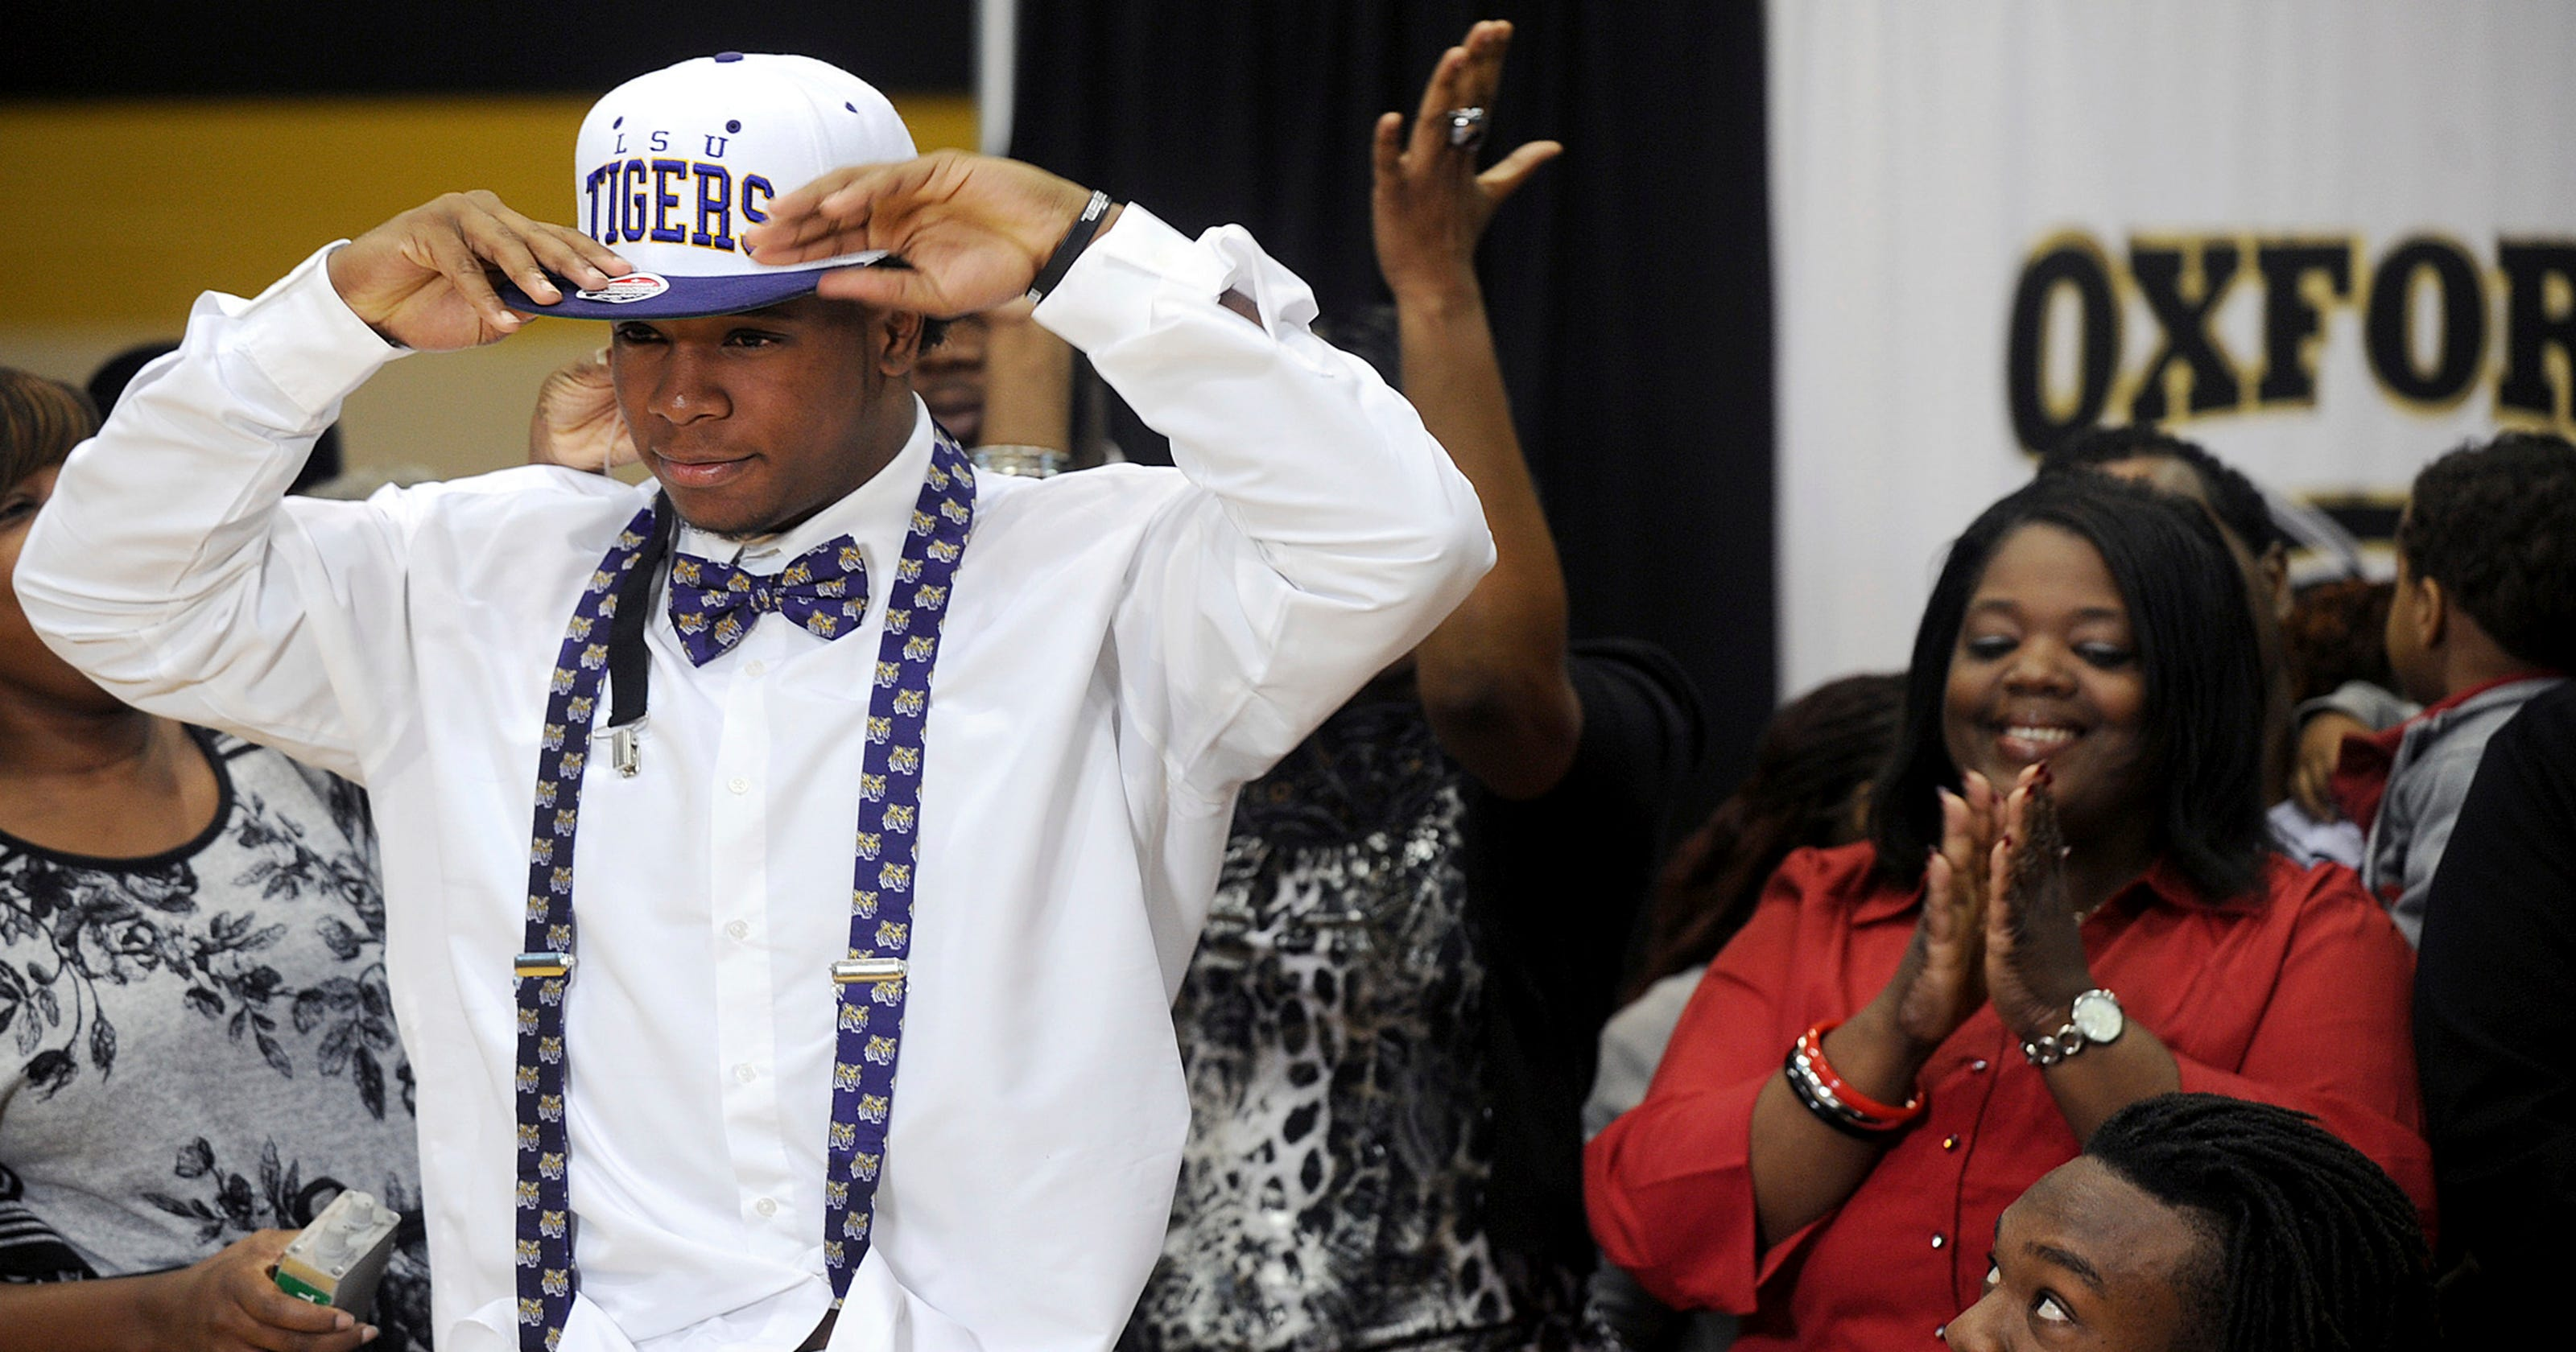 pdes signing day 2012 - HD2200×1362